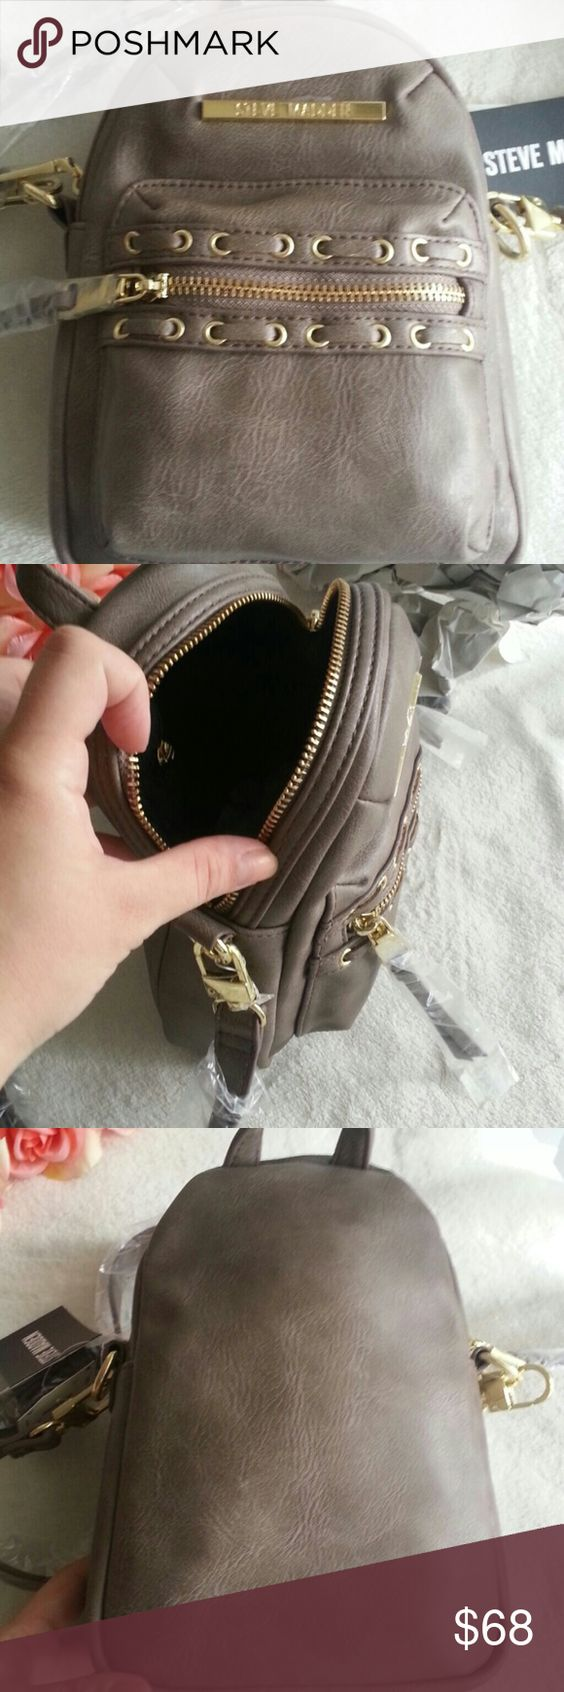 "NWT Steve Madden Mini Backpack Crossbody Cute crossbody bag Brand new with tag Removable and adjustable crossbody strap Retail $68 Measurements 9"" x 6.5"" x 3.5"" Steve Madden Bags Crossbody Bags"